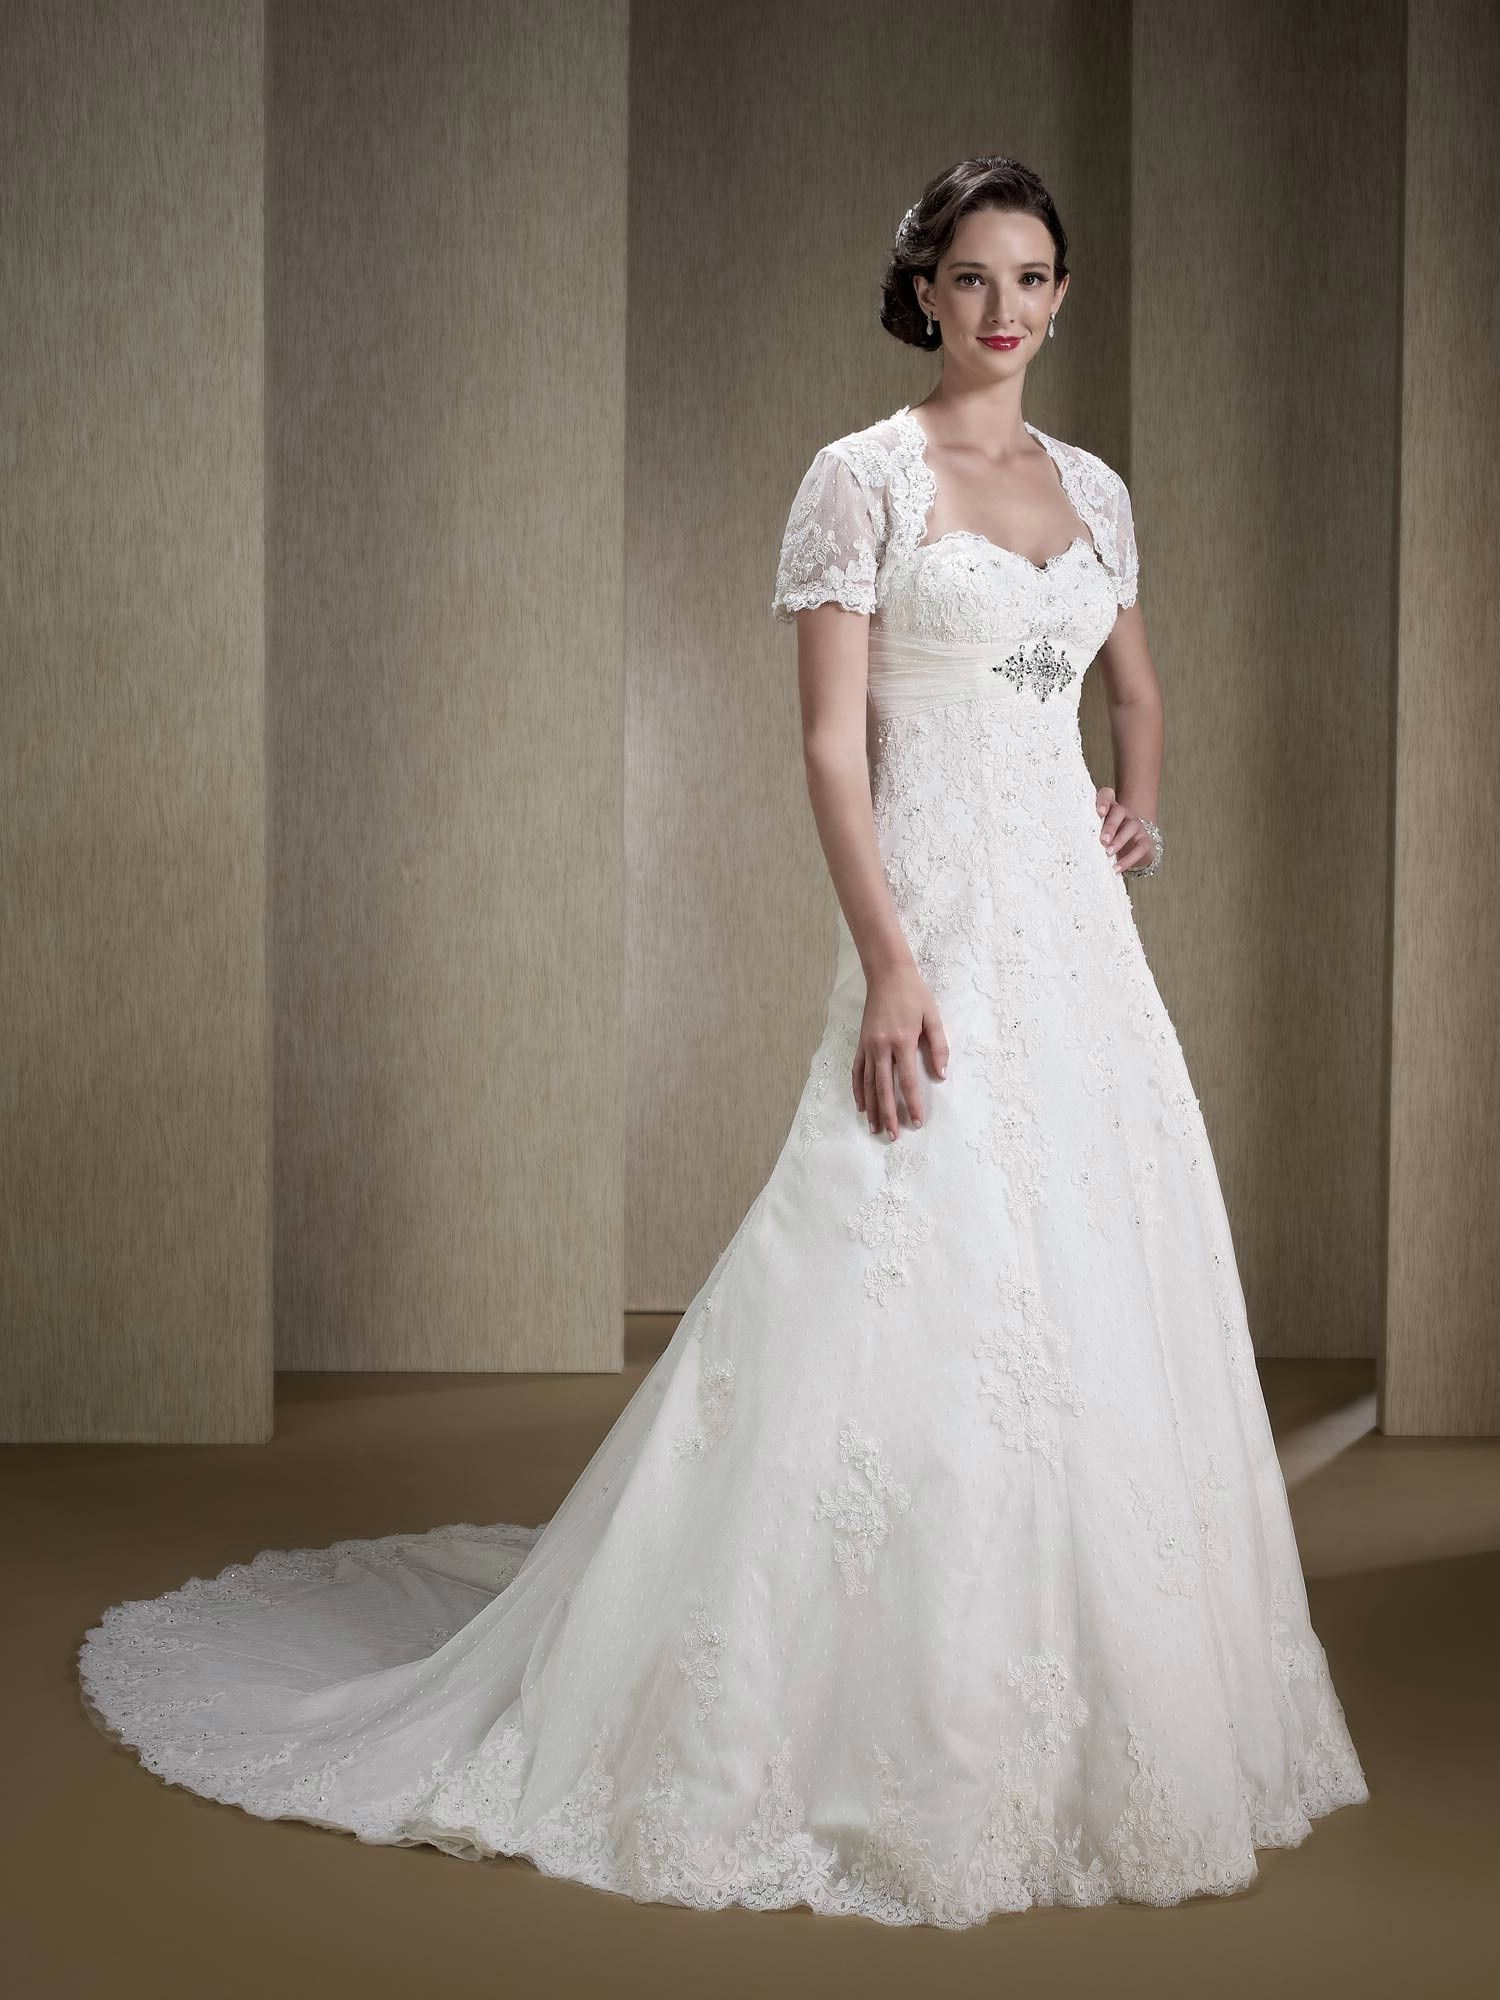 Clearance Wedding Dresses.A Line Strapless Wedding Dress Lace Overlay Removable Jacket